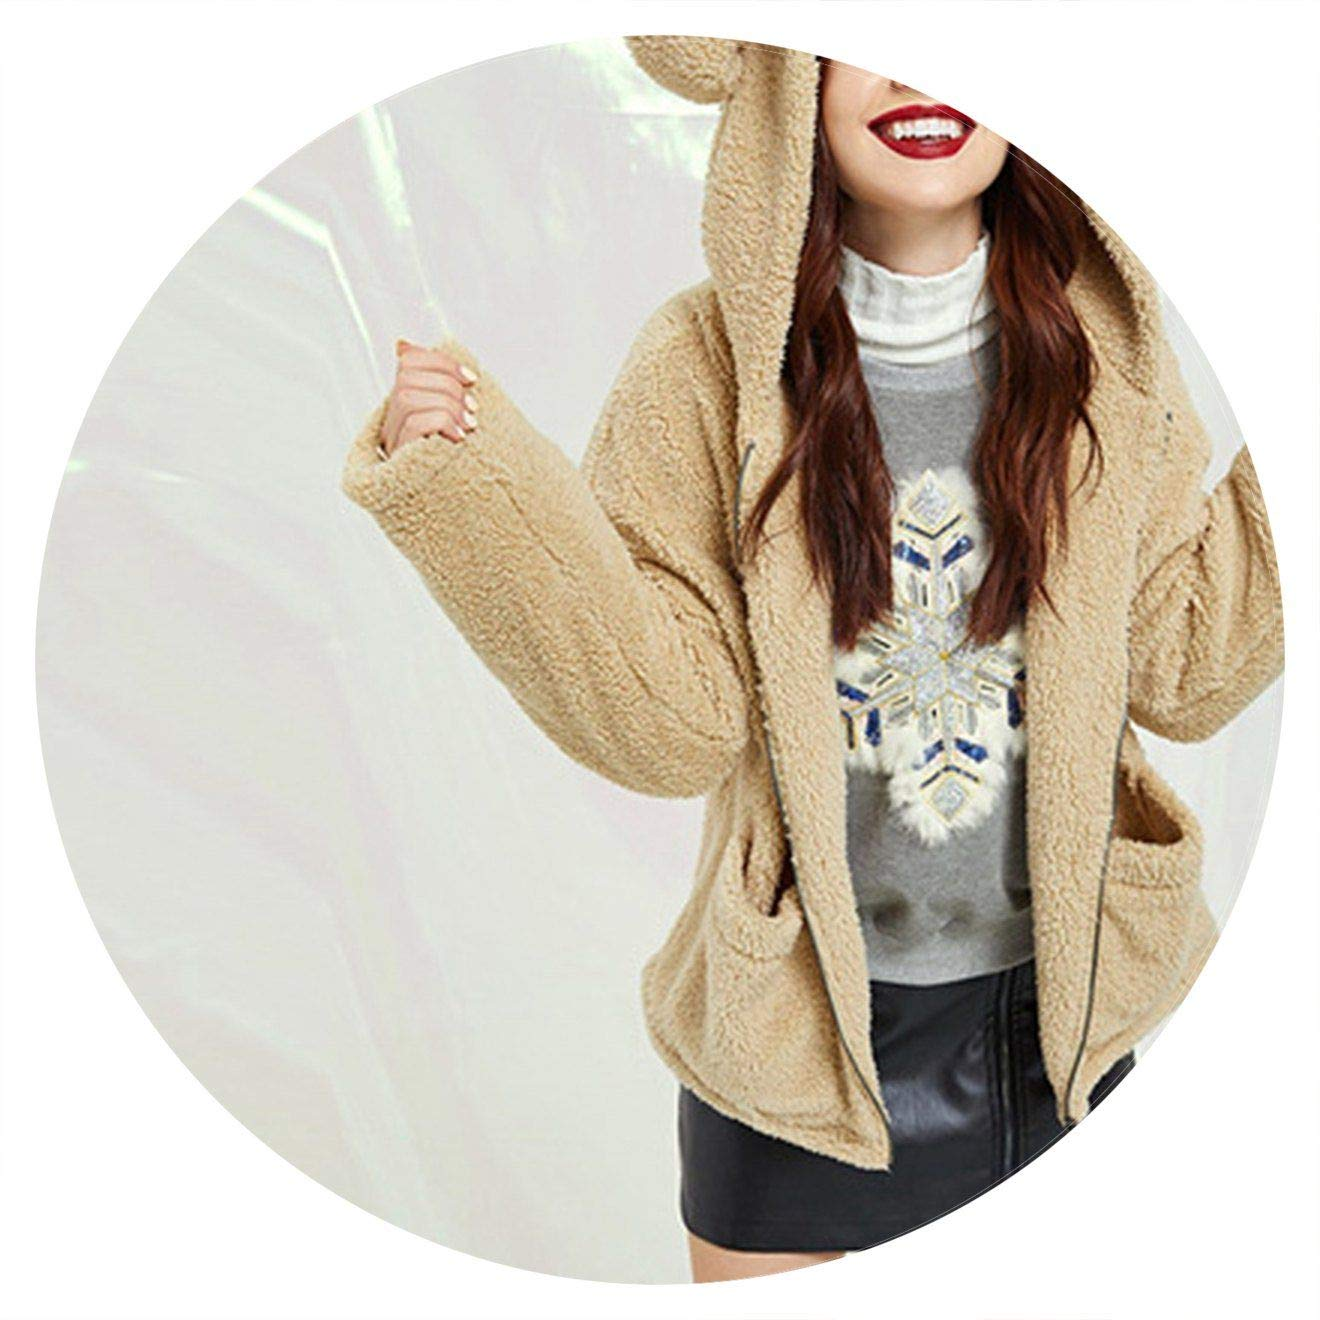 Khaki Summerlavender Preppy with Bear Ear Solid Pocket Zip Up Teddy Hoodie Jacket Thermal Campus Women Coat and Outerwear